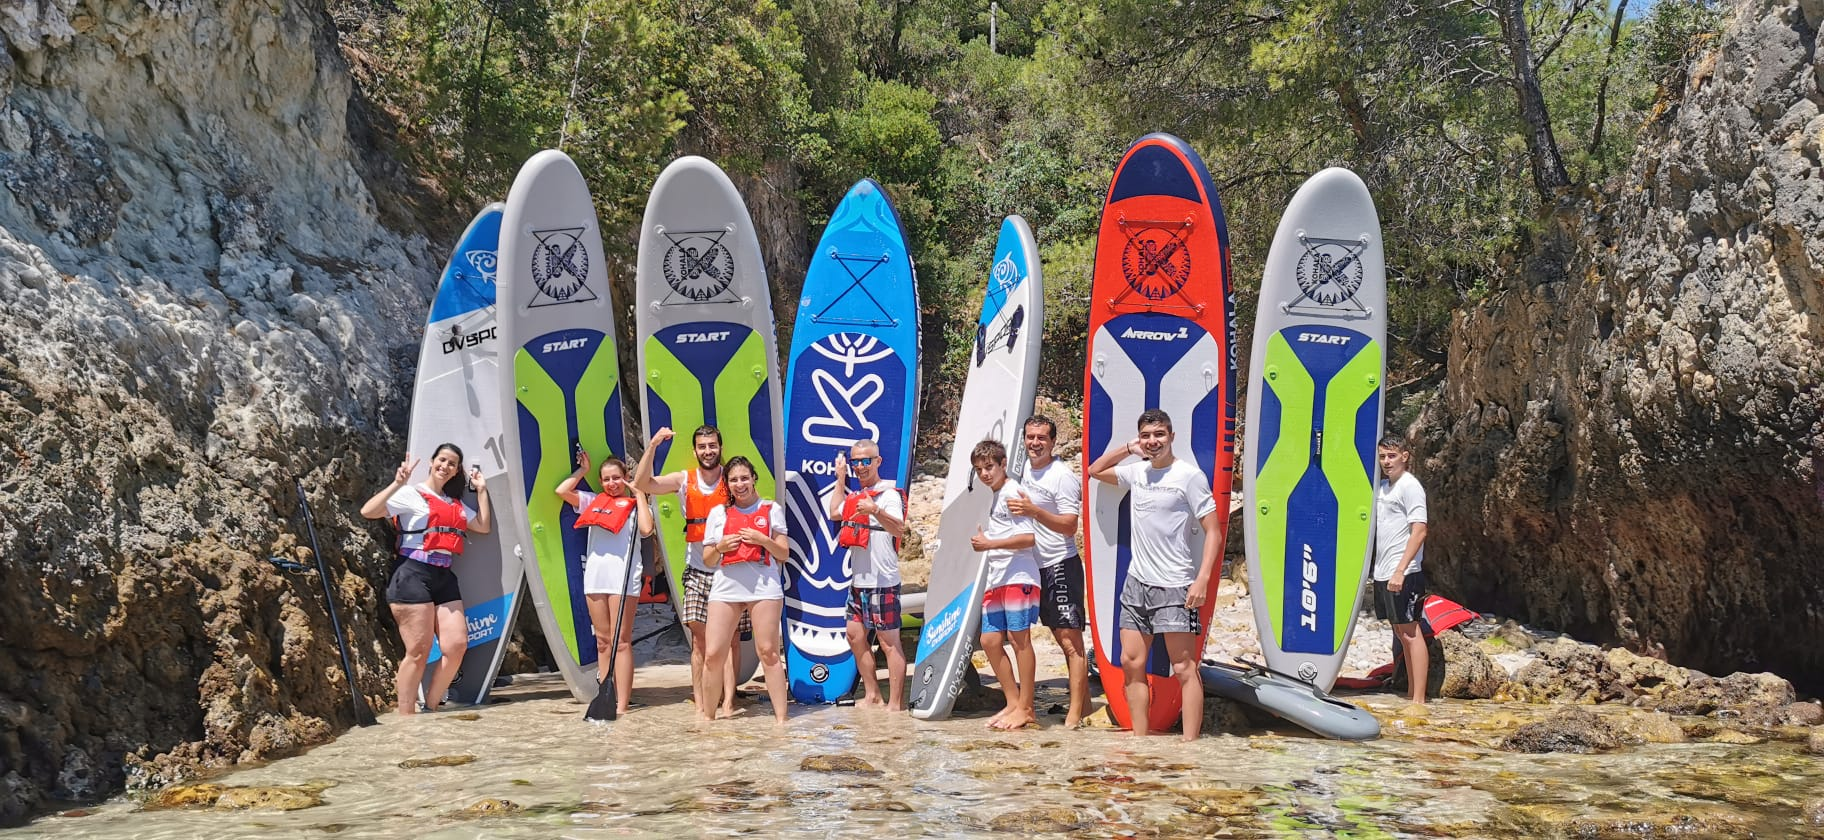 Arrábida Stand Up Paddleboard experience: Setubal SUP in Portugal